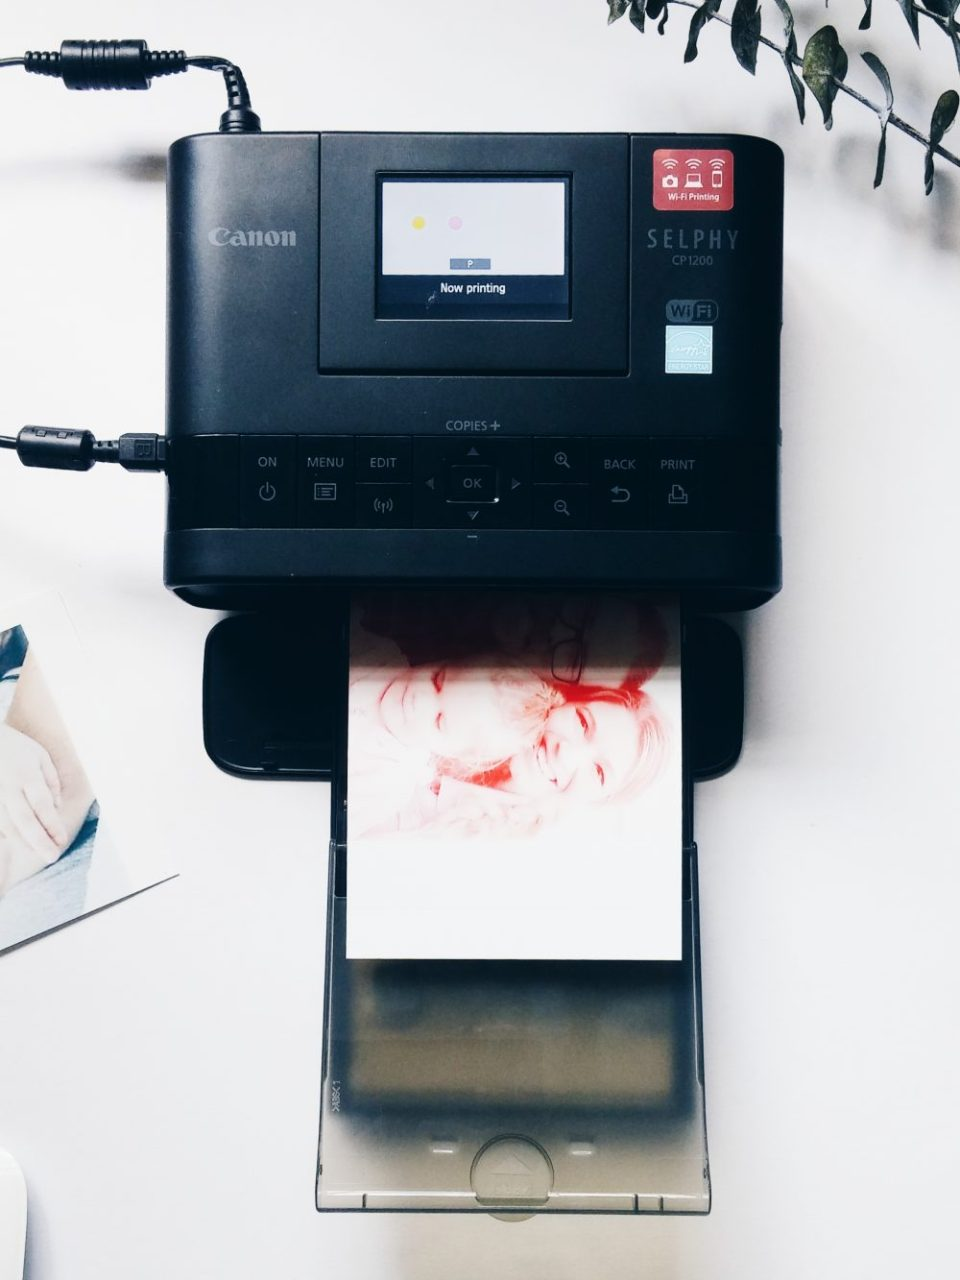 How to Easily Print Instagram Photos from Home with Canan Selphy CP1200